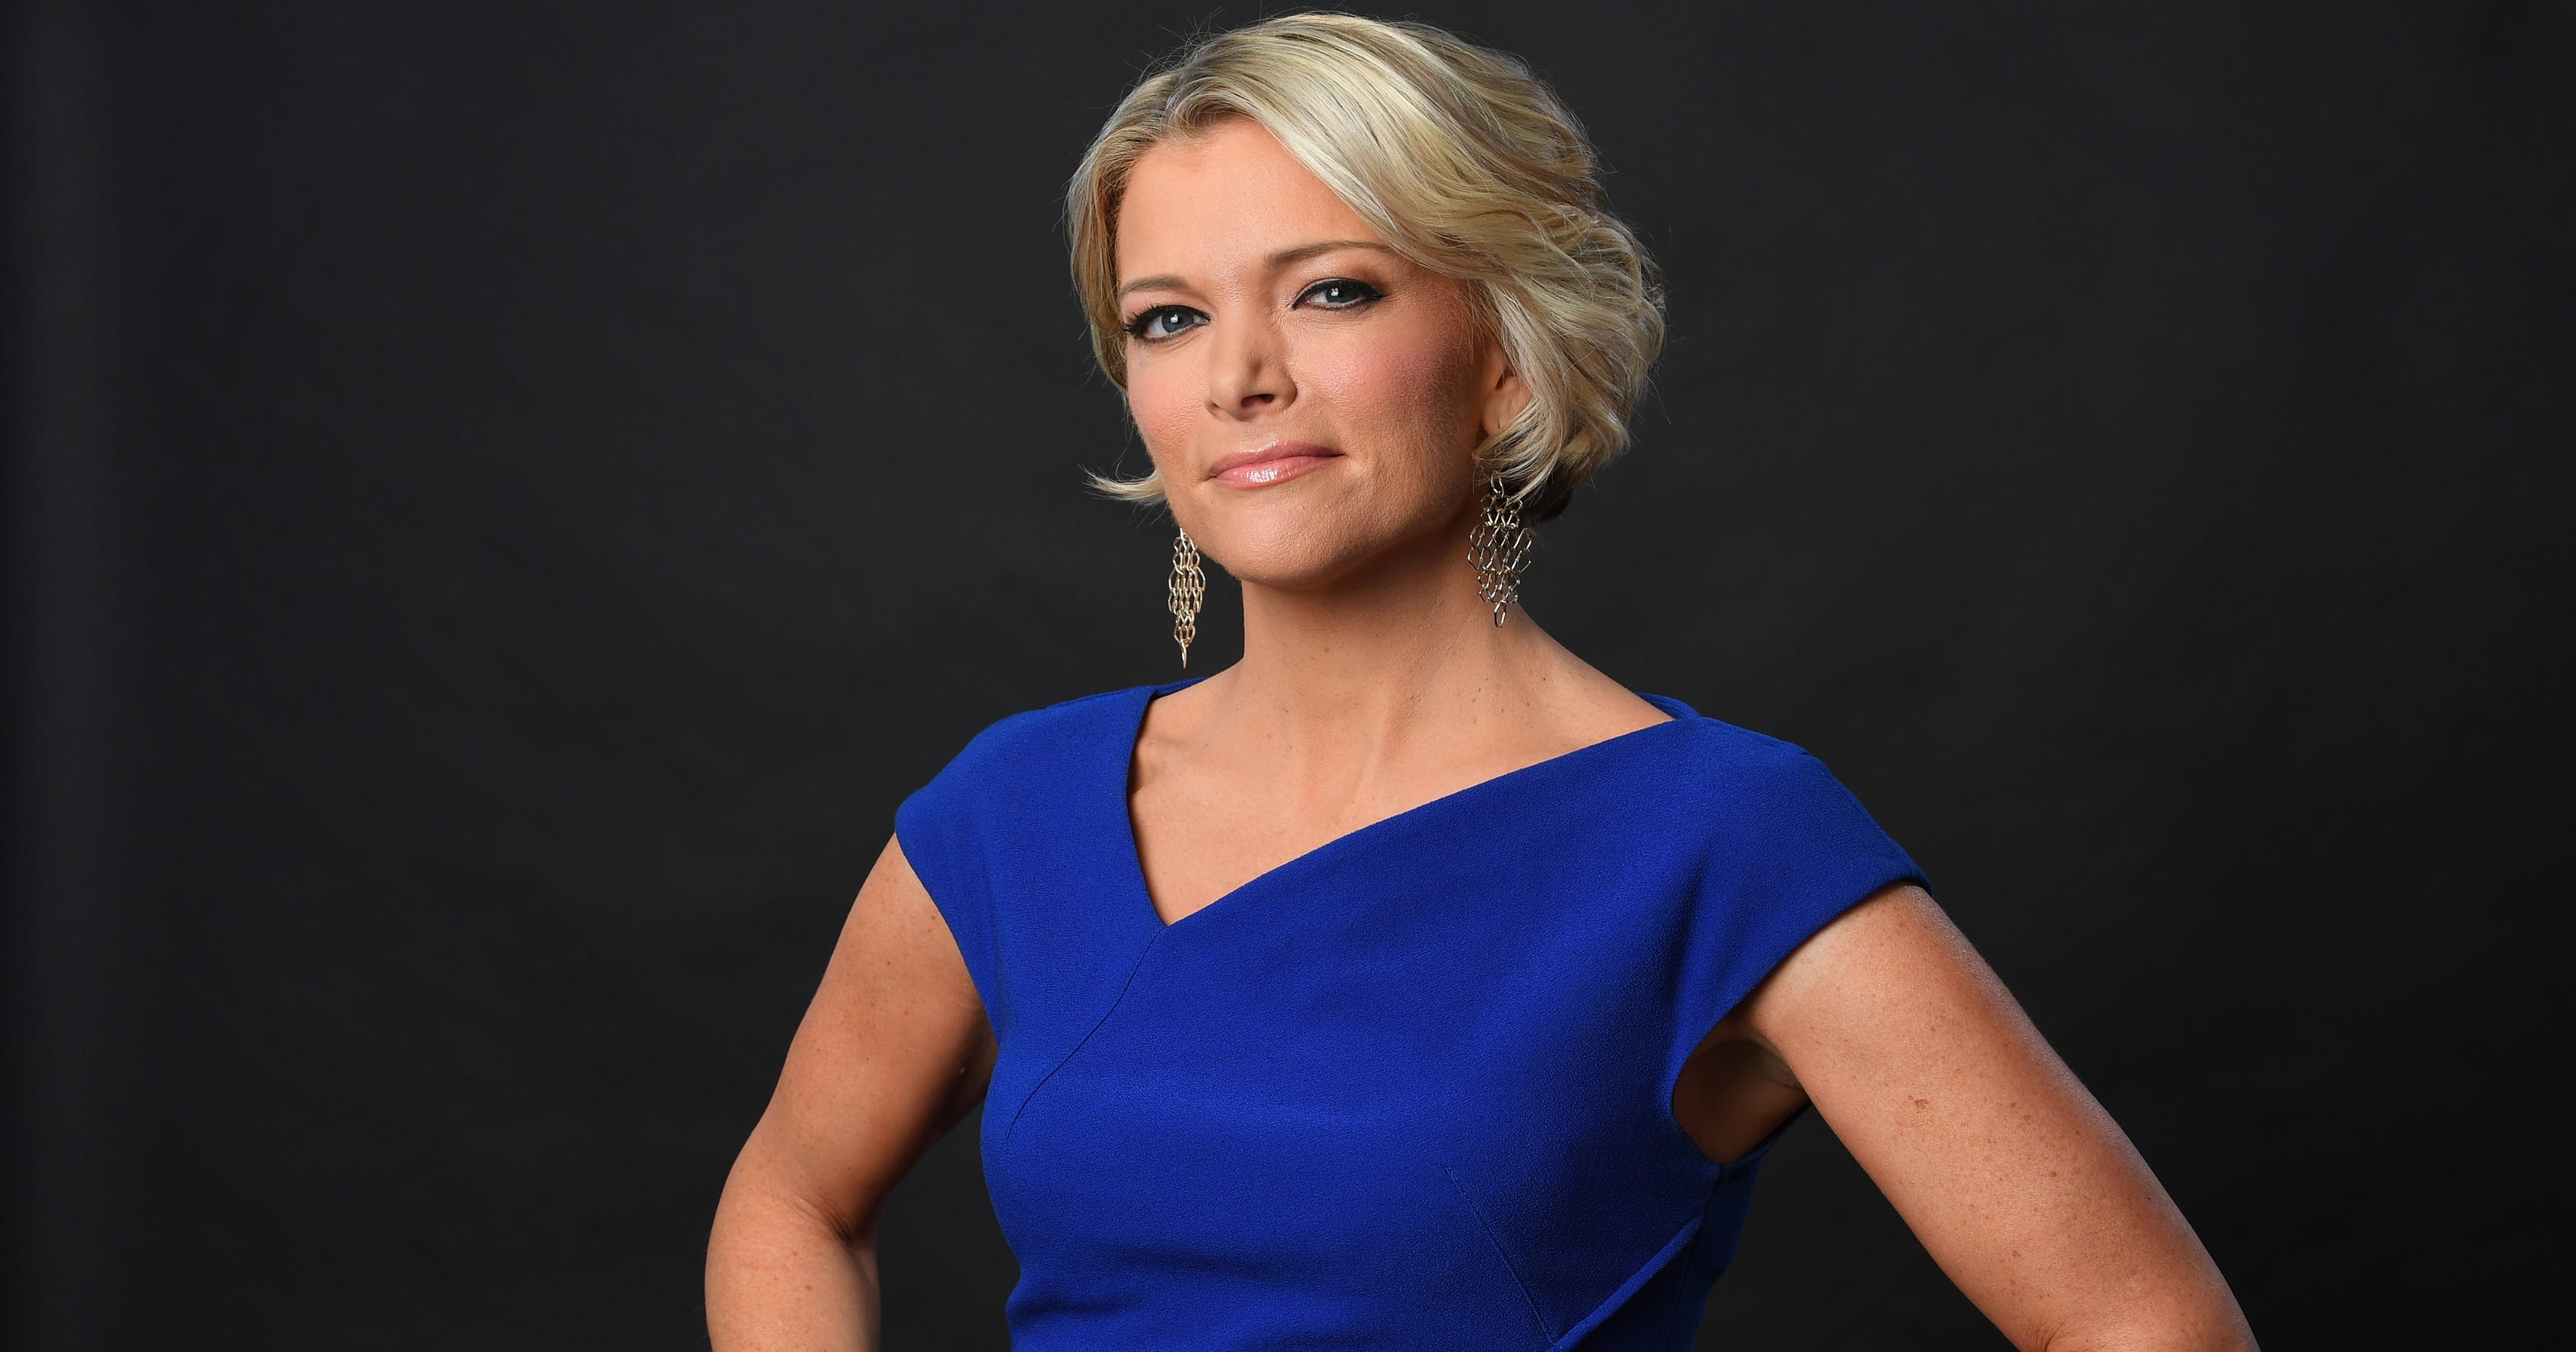 megyn kelly tweet attacks shutterfly for lying about christmas